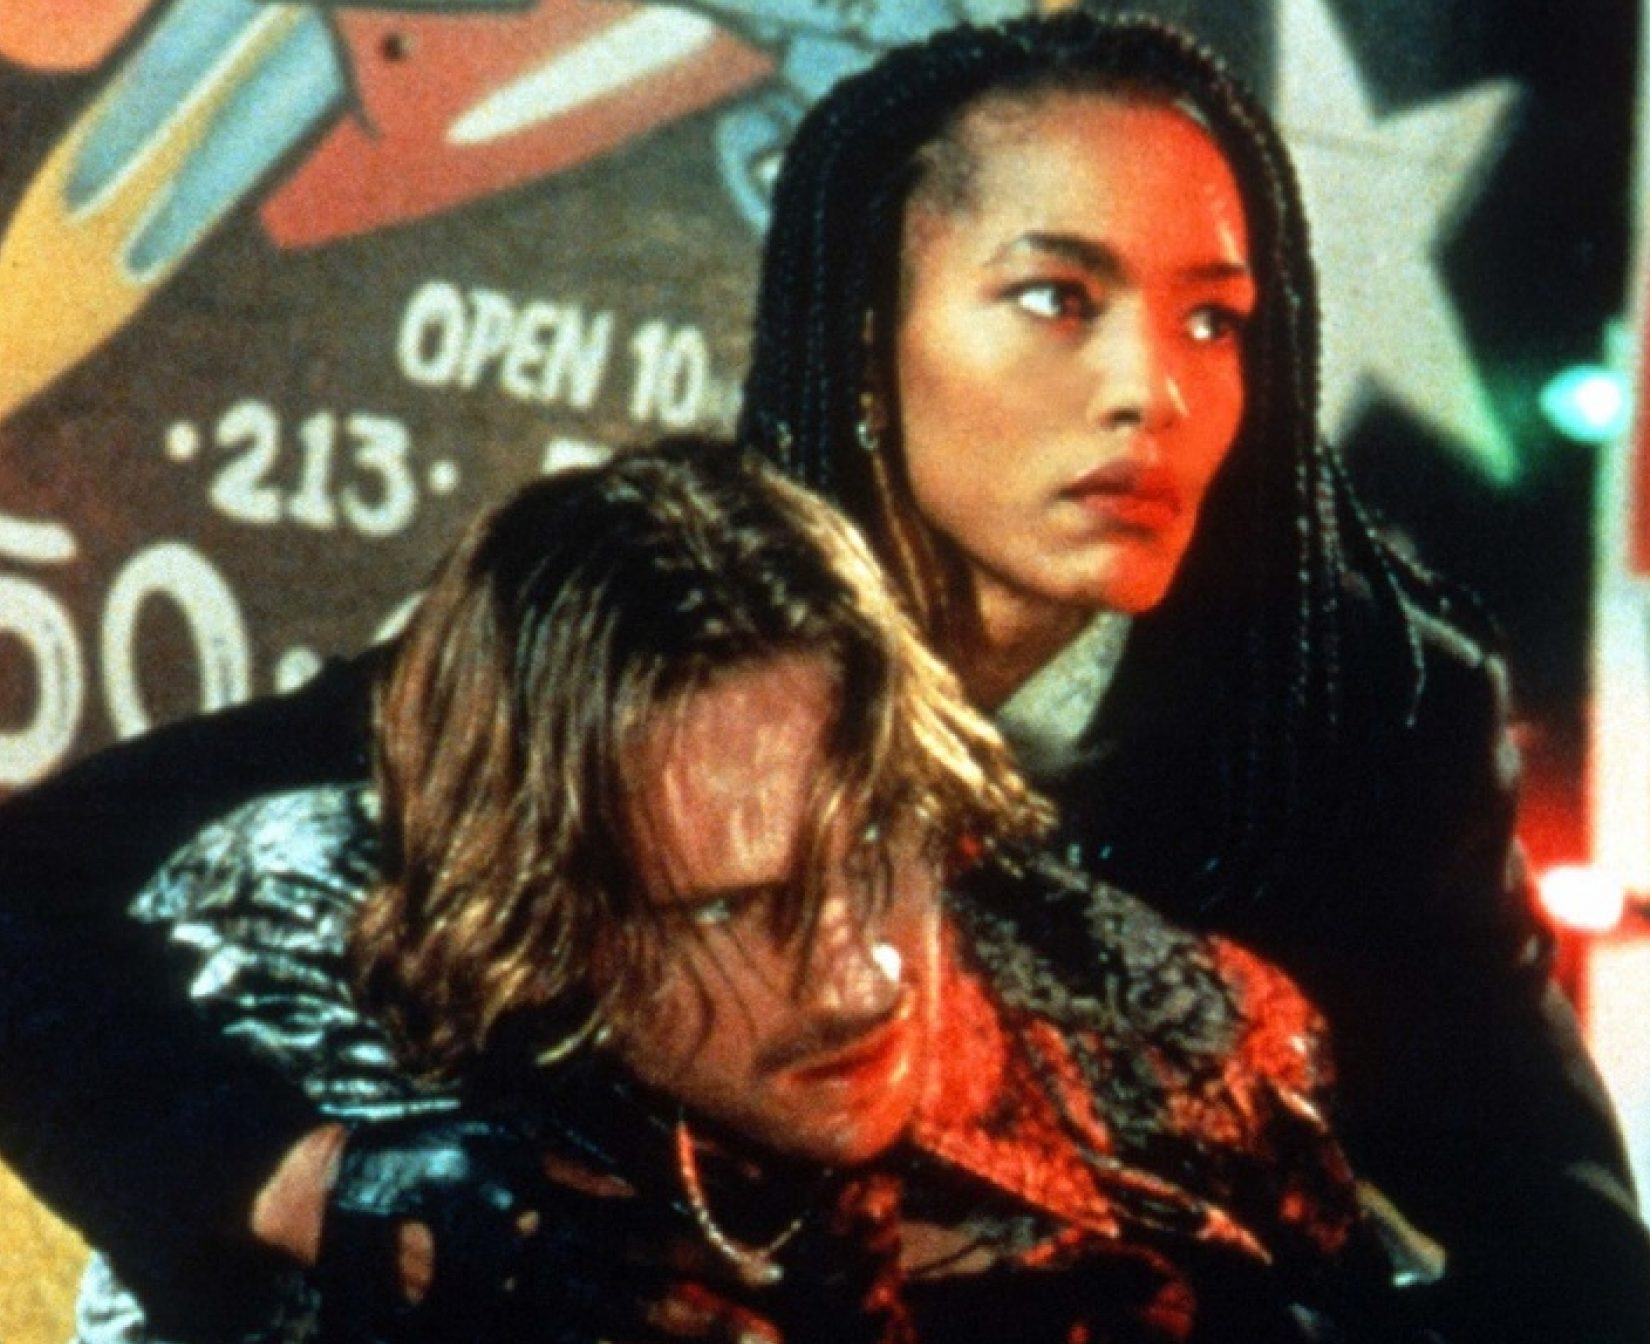 strange days 1 e1605530784147 20 Films Set In Futures Past: What They Got Right (And Wrong) About The World We Live In